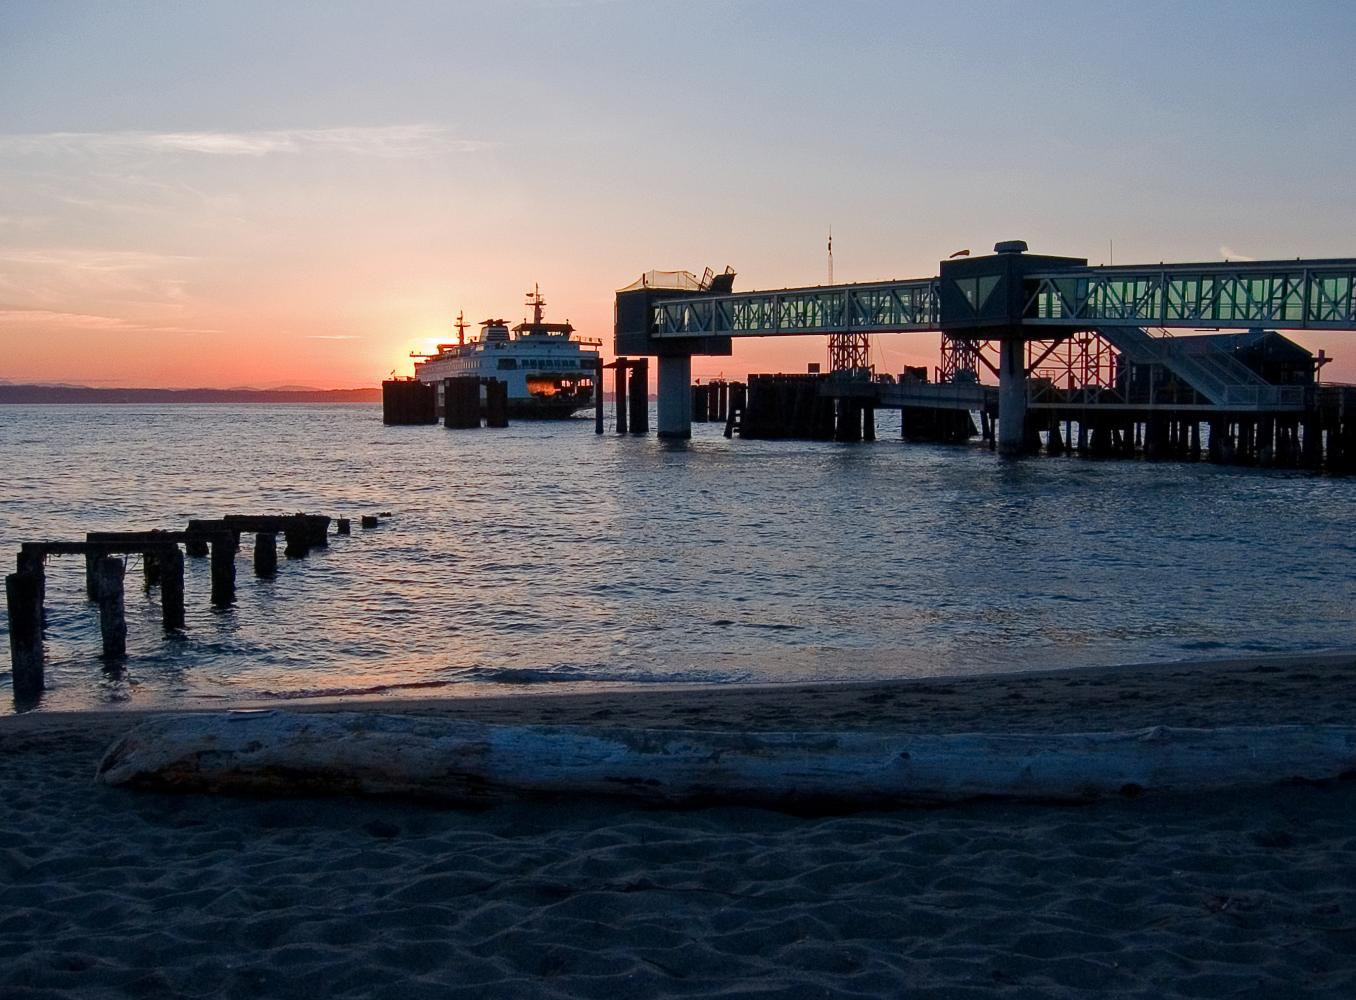 The Edmonds ferry seen from Brackett's Landing. The Edmonds area has plenty of events and activities to enjoy.